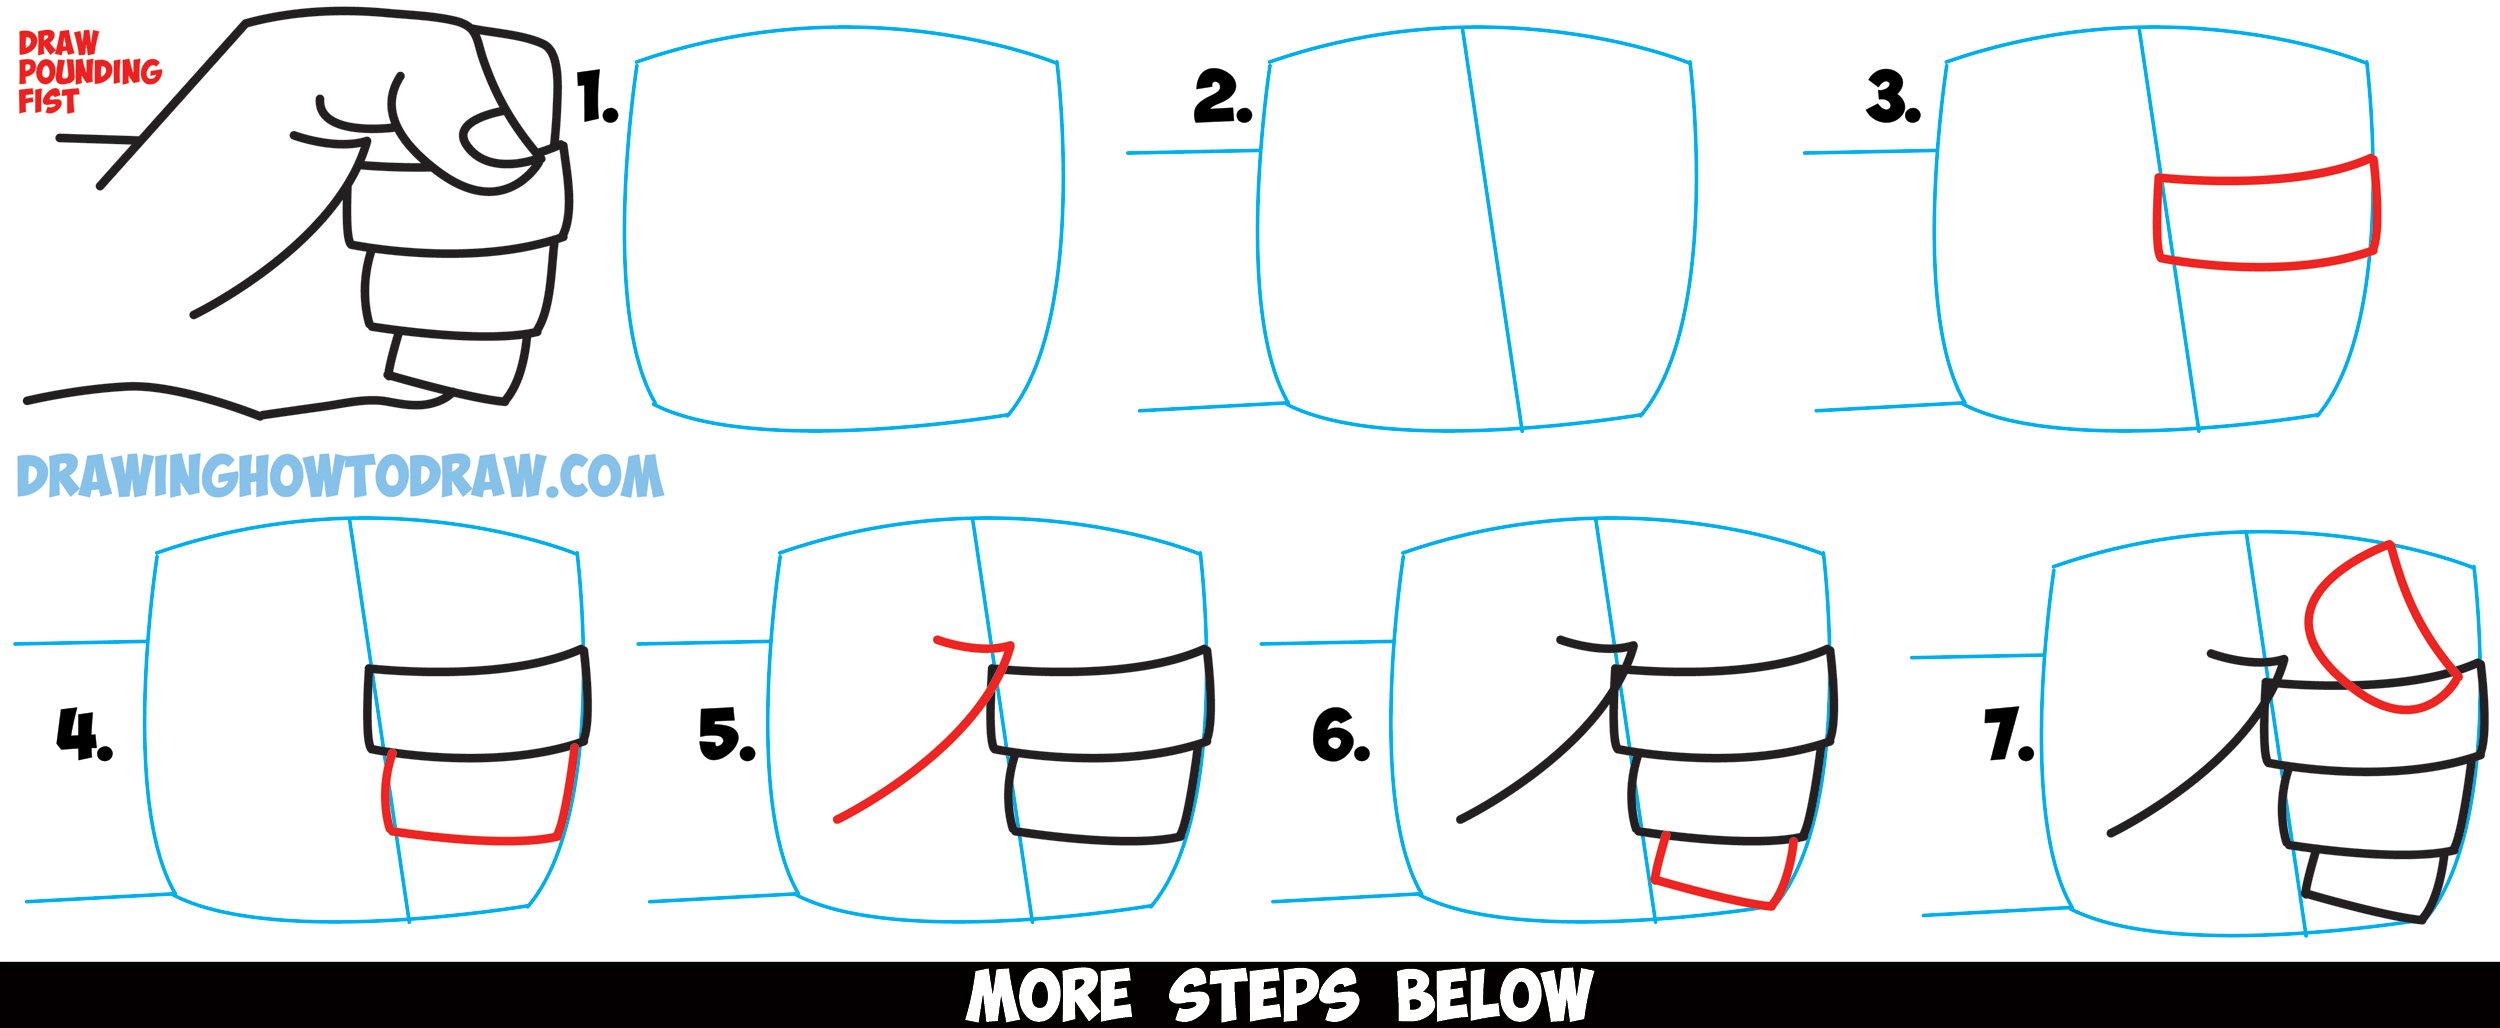 How to draw fists side view clenched drawing cartoon for How to make cartoon drawings step by step